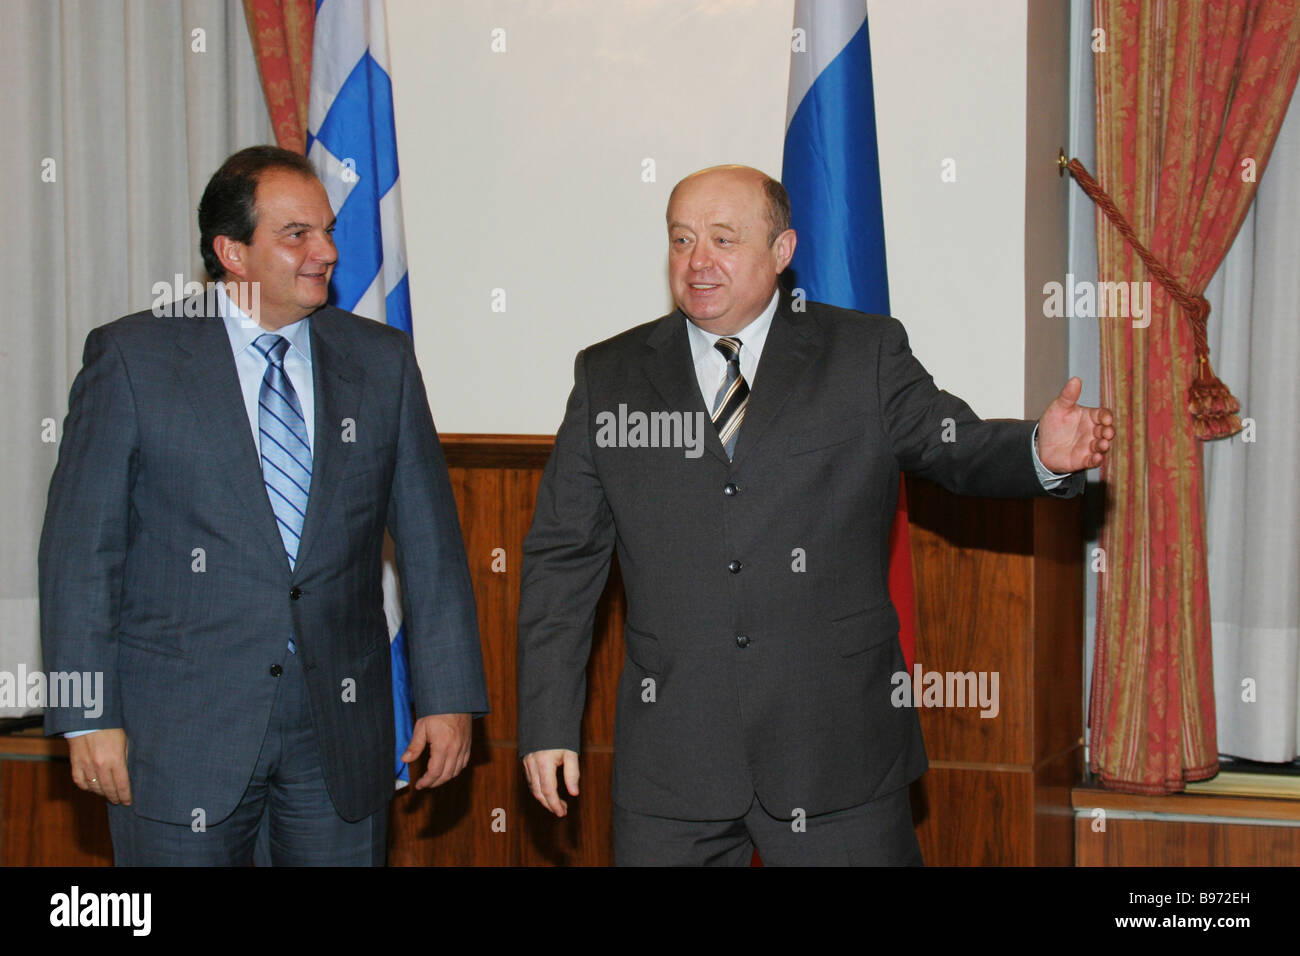 Russian and Greek Prime Ministers Mikhail Fradkov right and Konstantinos Karamanlis during the meeting in the Russian - Stock Image